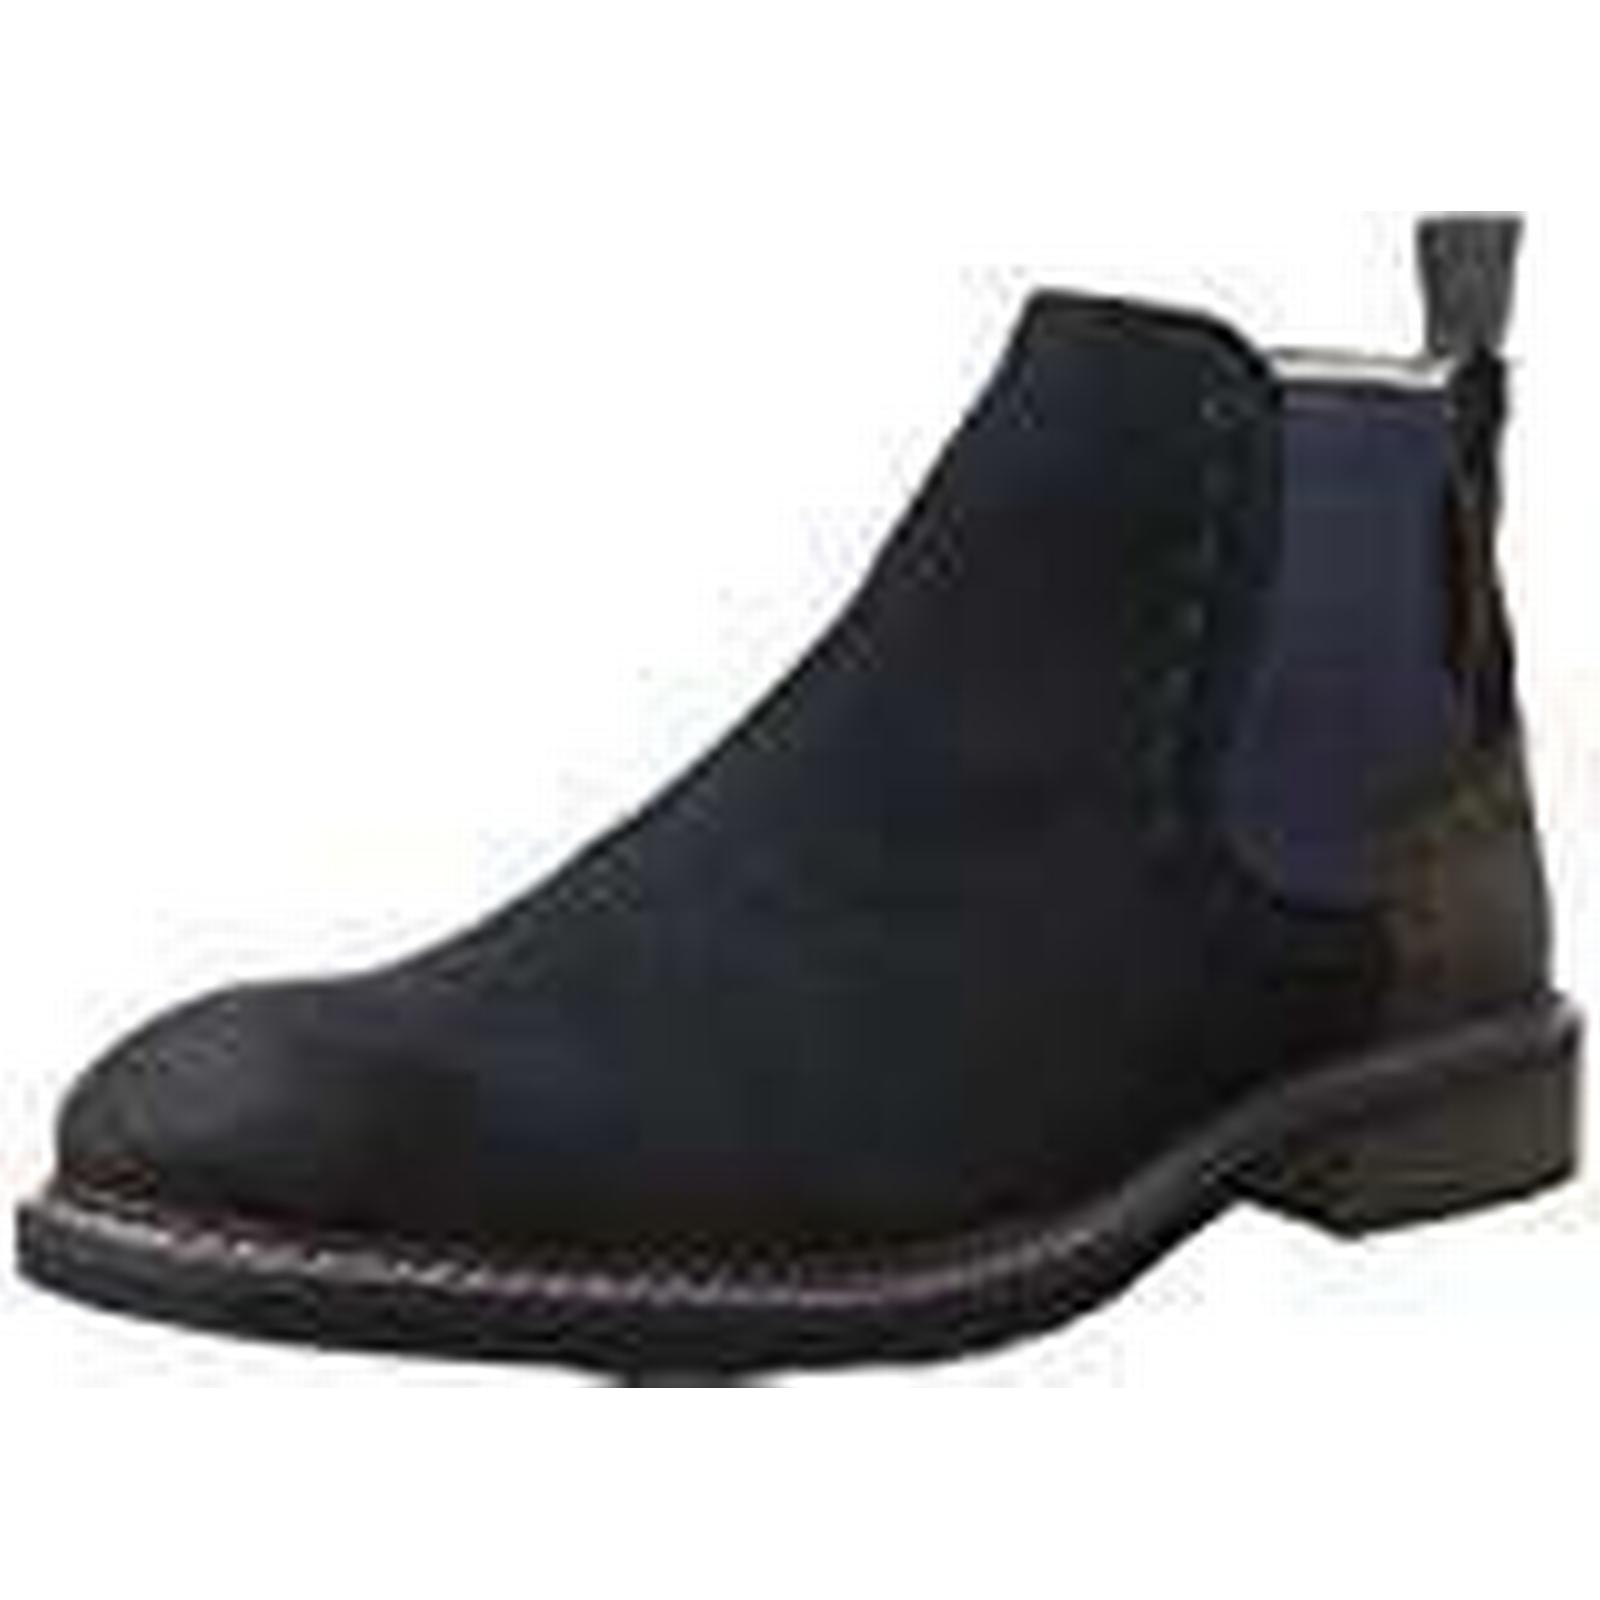 S.Oliver Men''s 15301 (Navy), Chelsea Boots, Blue (Navy), 15301 7.5 UK a1336f